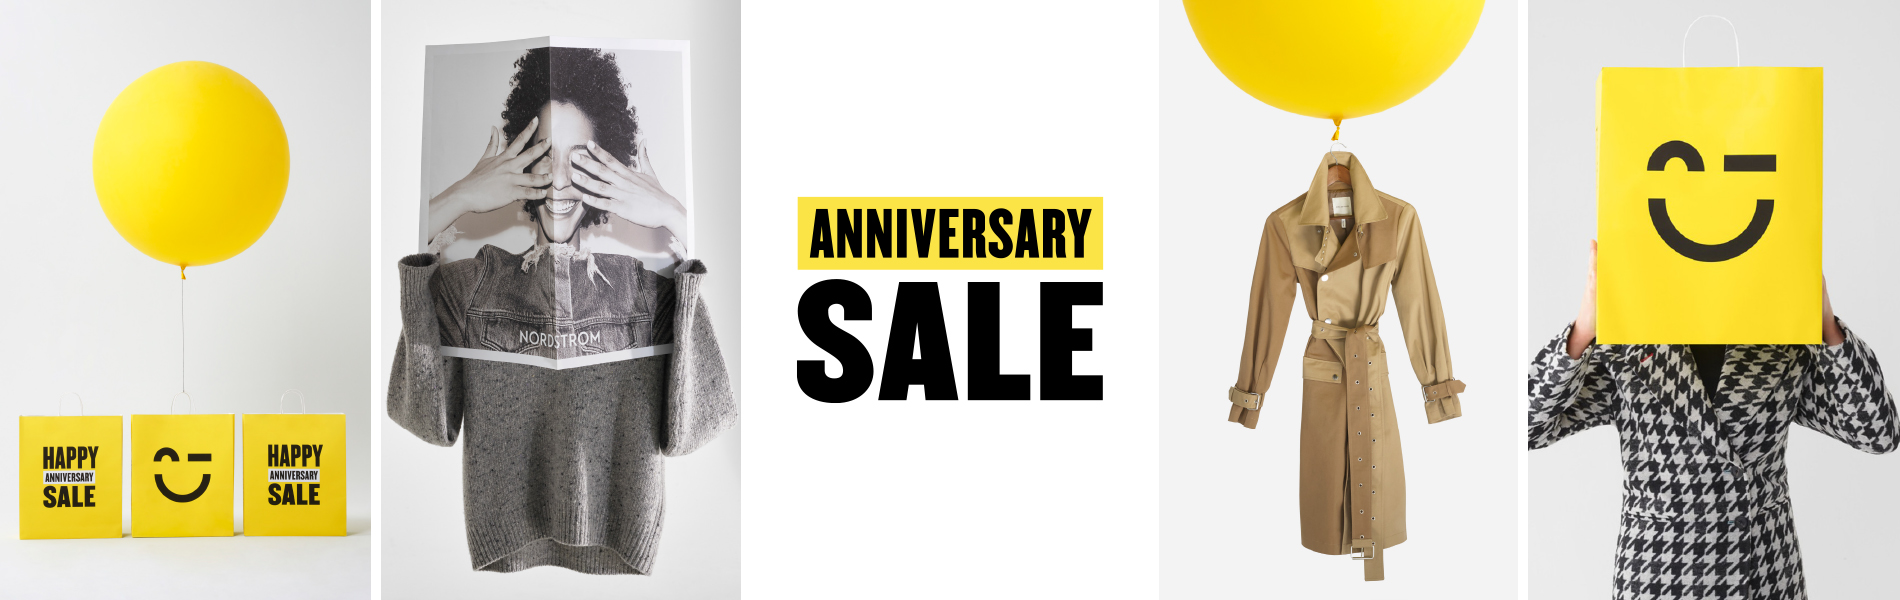 THE NORDSTROM ONE-OF-A-KIND ANNIVERSARY SALE: THE BEST DEALS OF THE YEAR